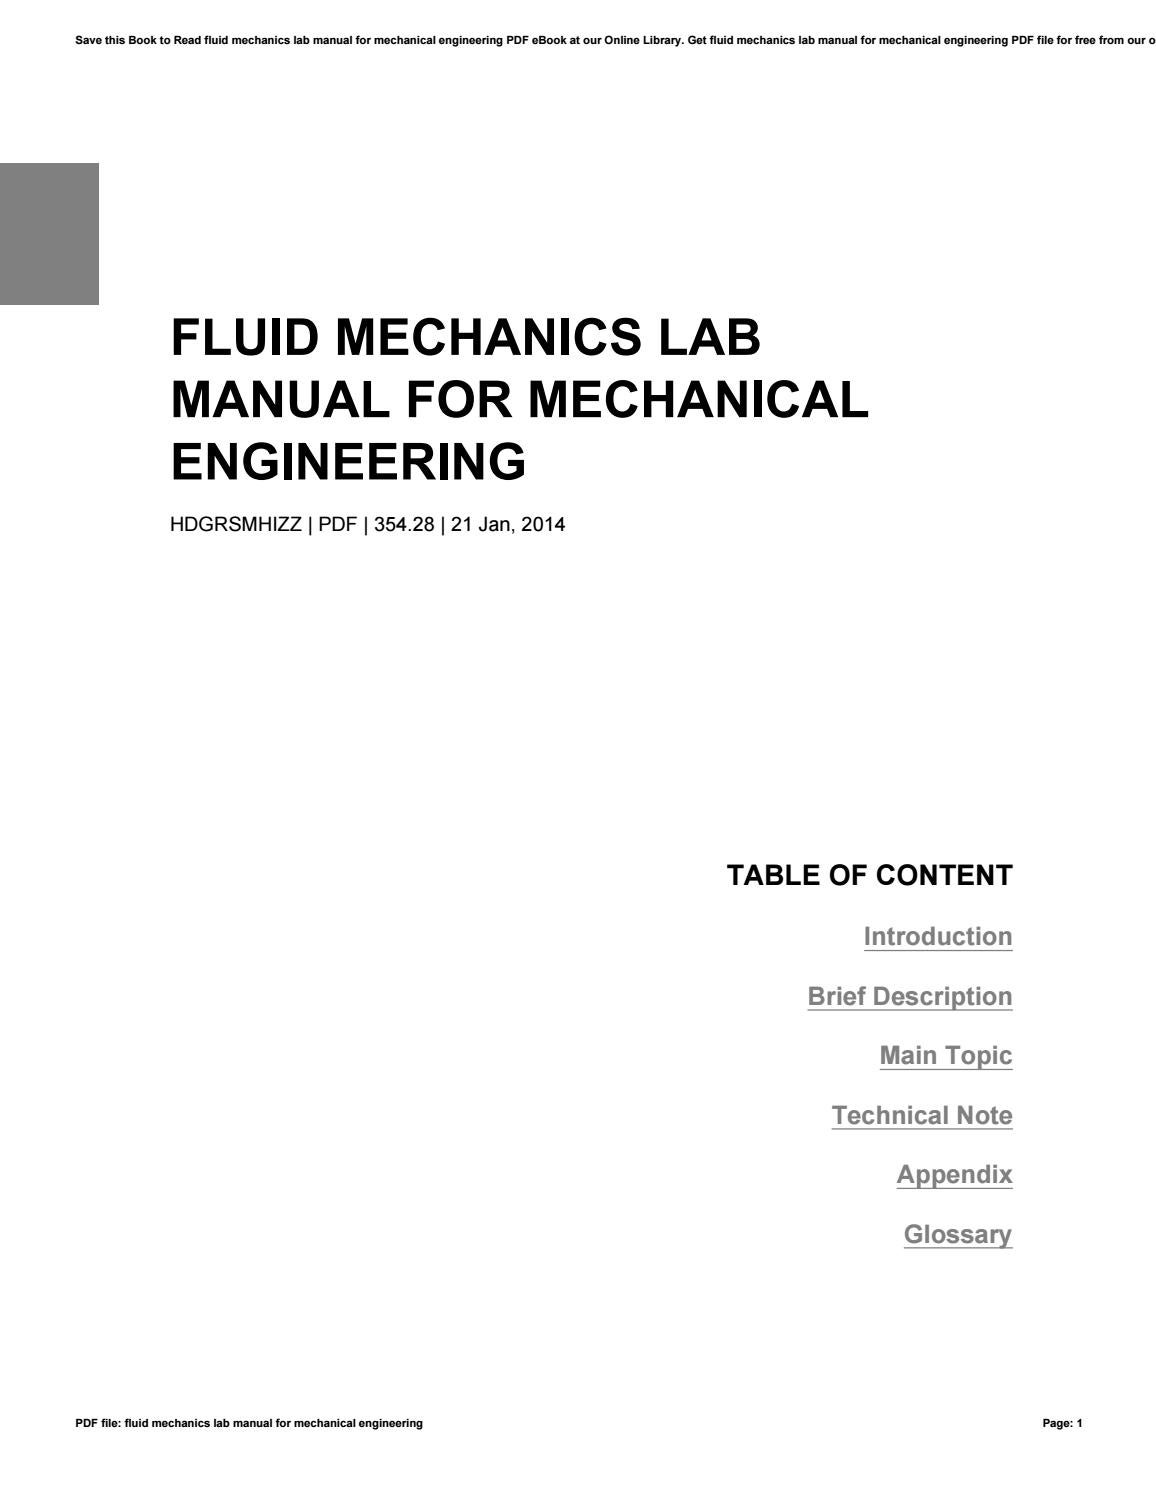 Fluid mechanics lab manual for mechanical engineering by LoisBurchette4023  - issuu